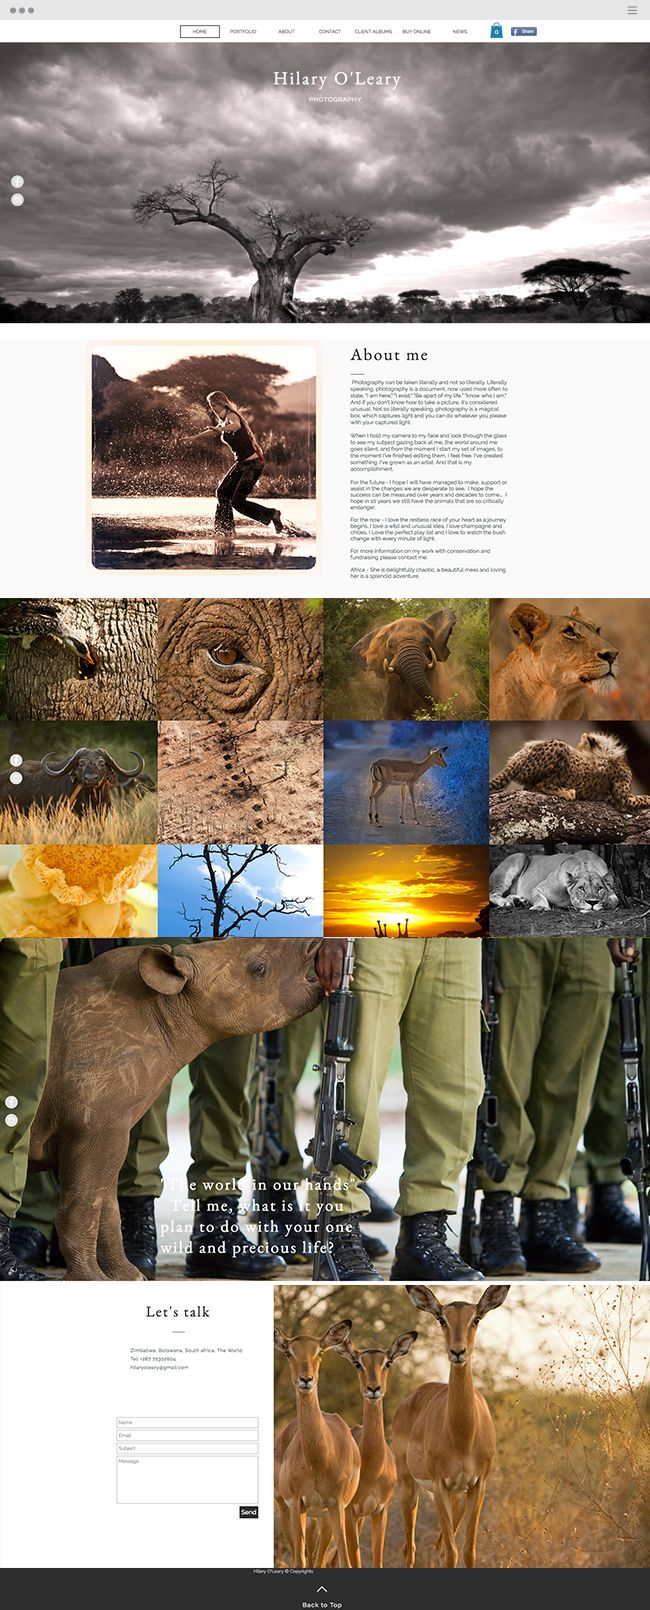 Hilary O'Leary | South Africa Wildlife Photography